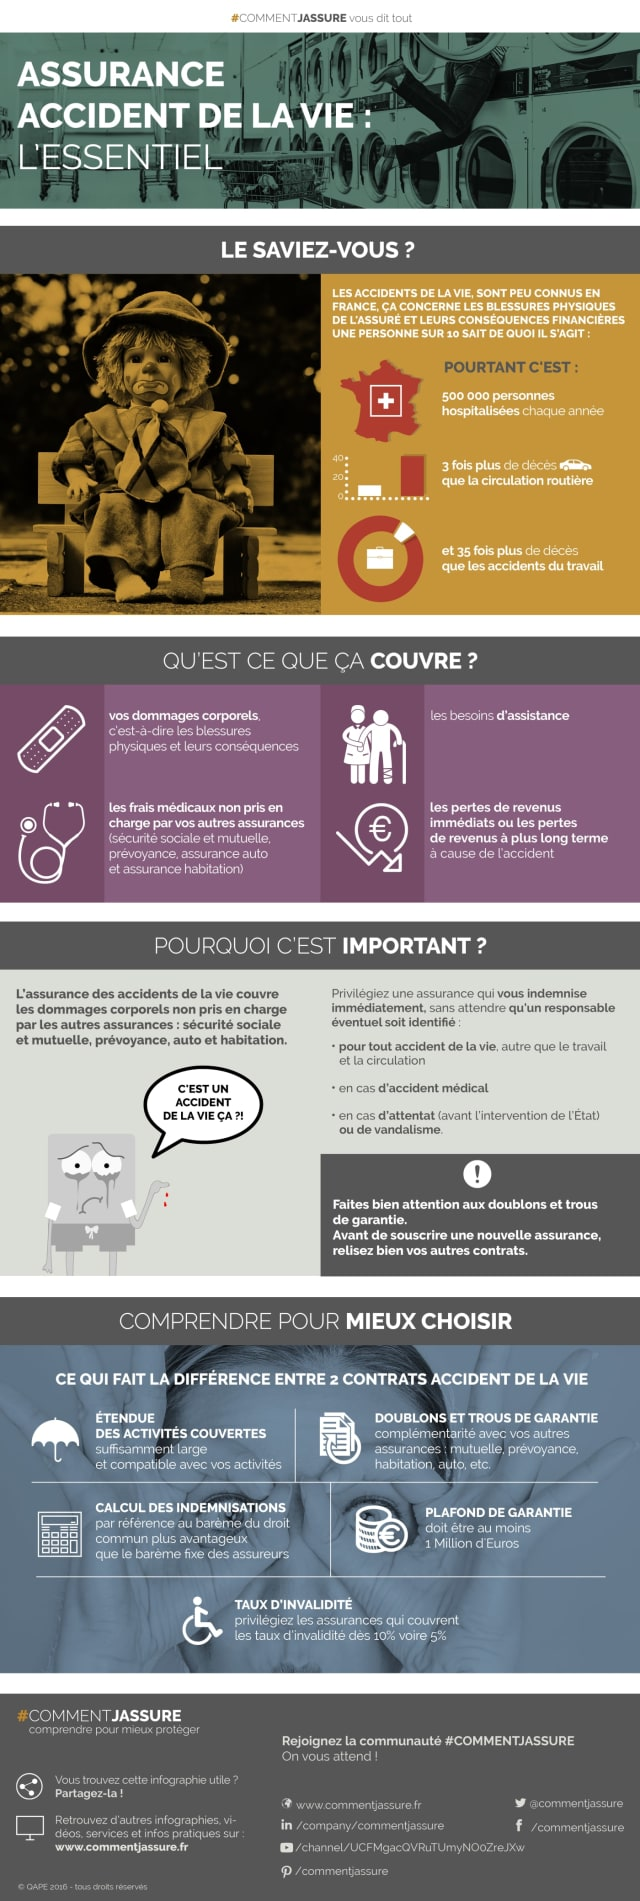 Assurance Accidents De La Vie Optimiser Son Indemnisation En 4